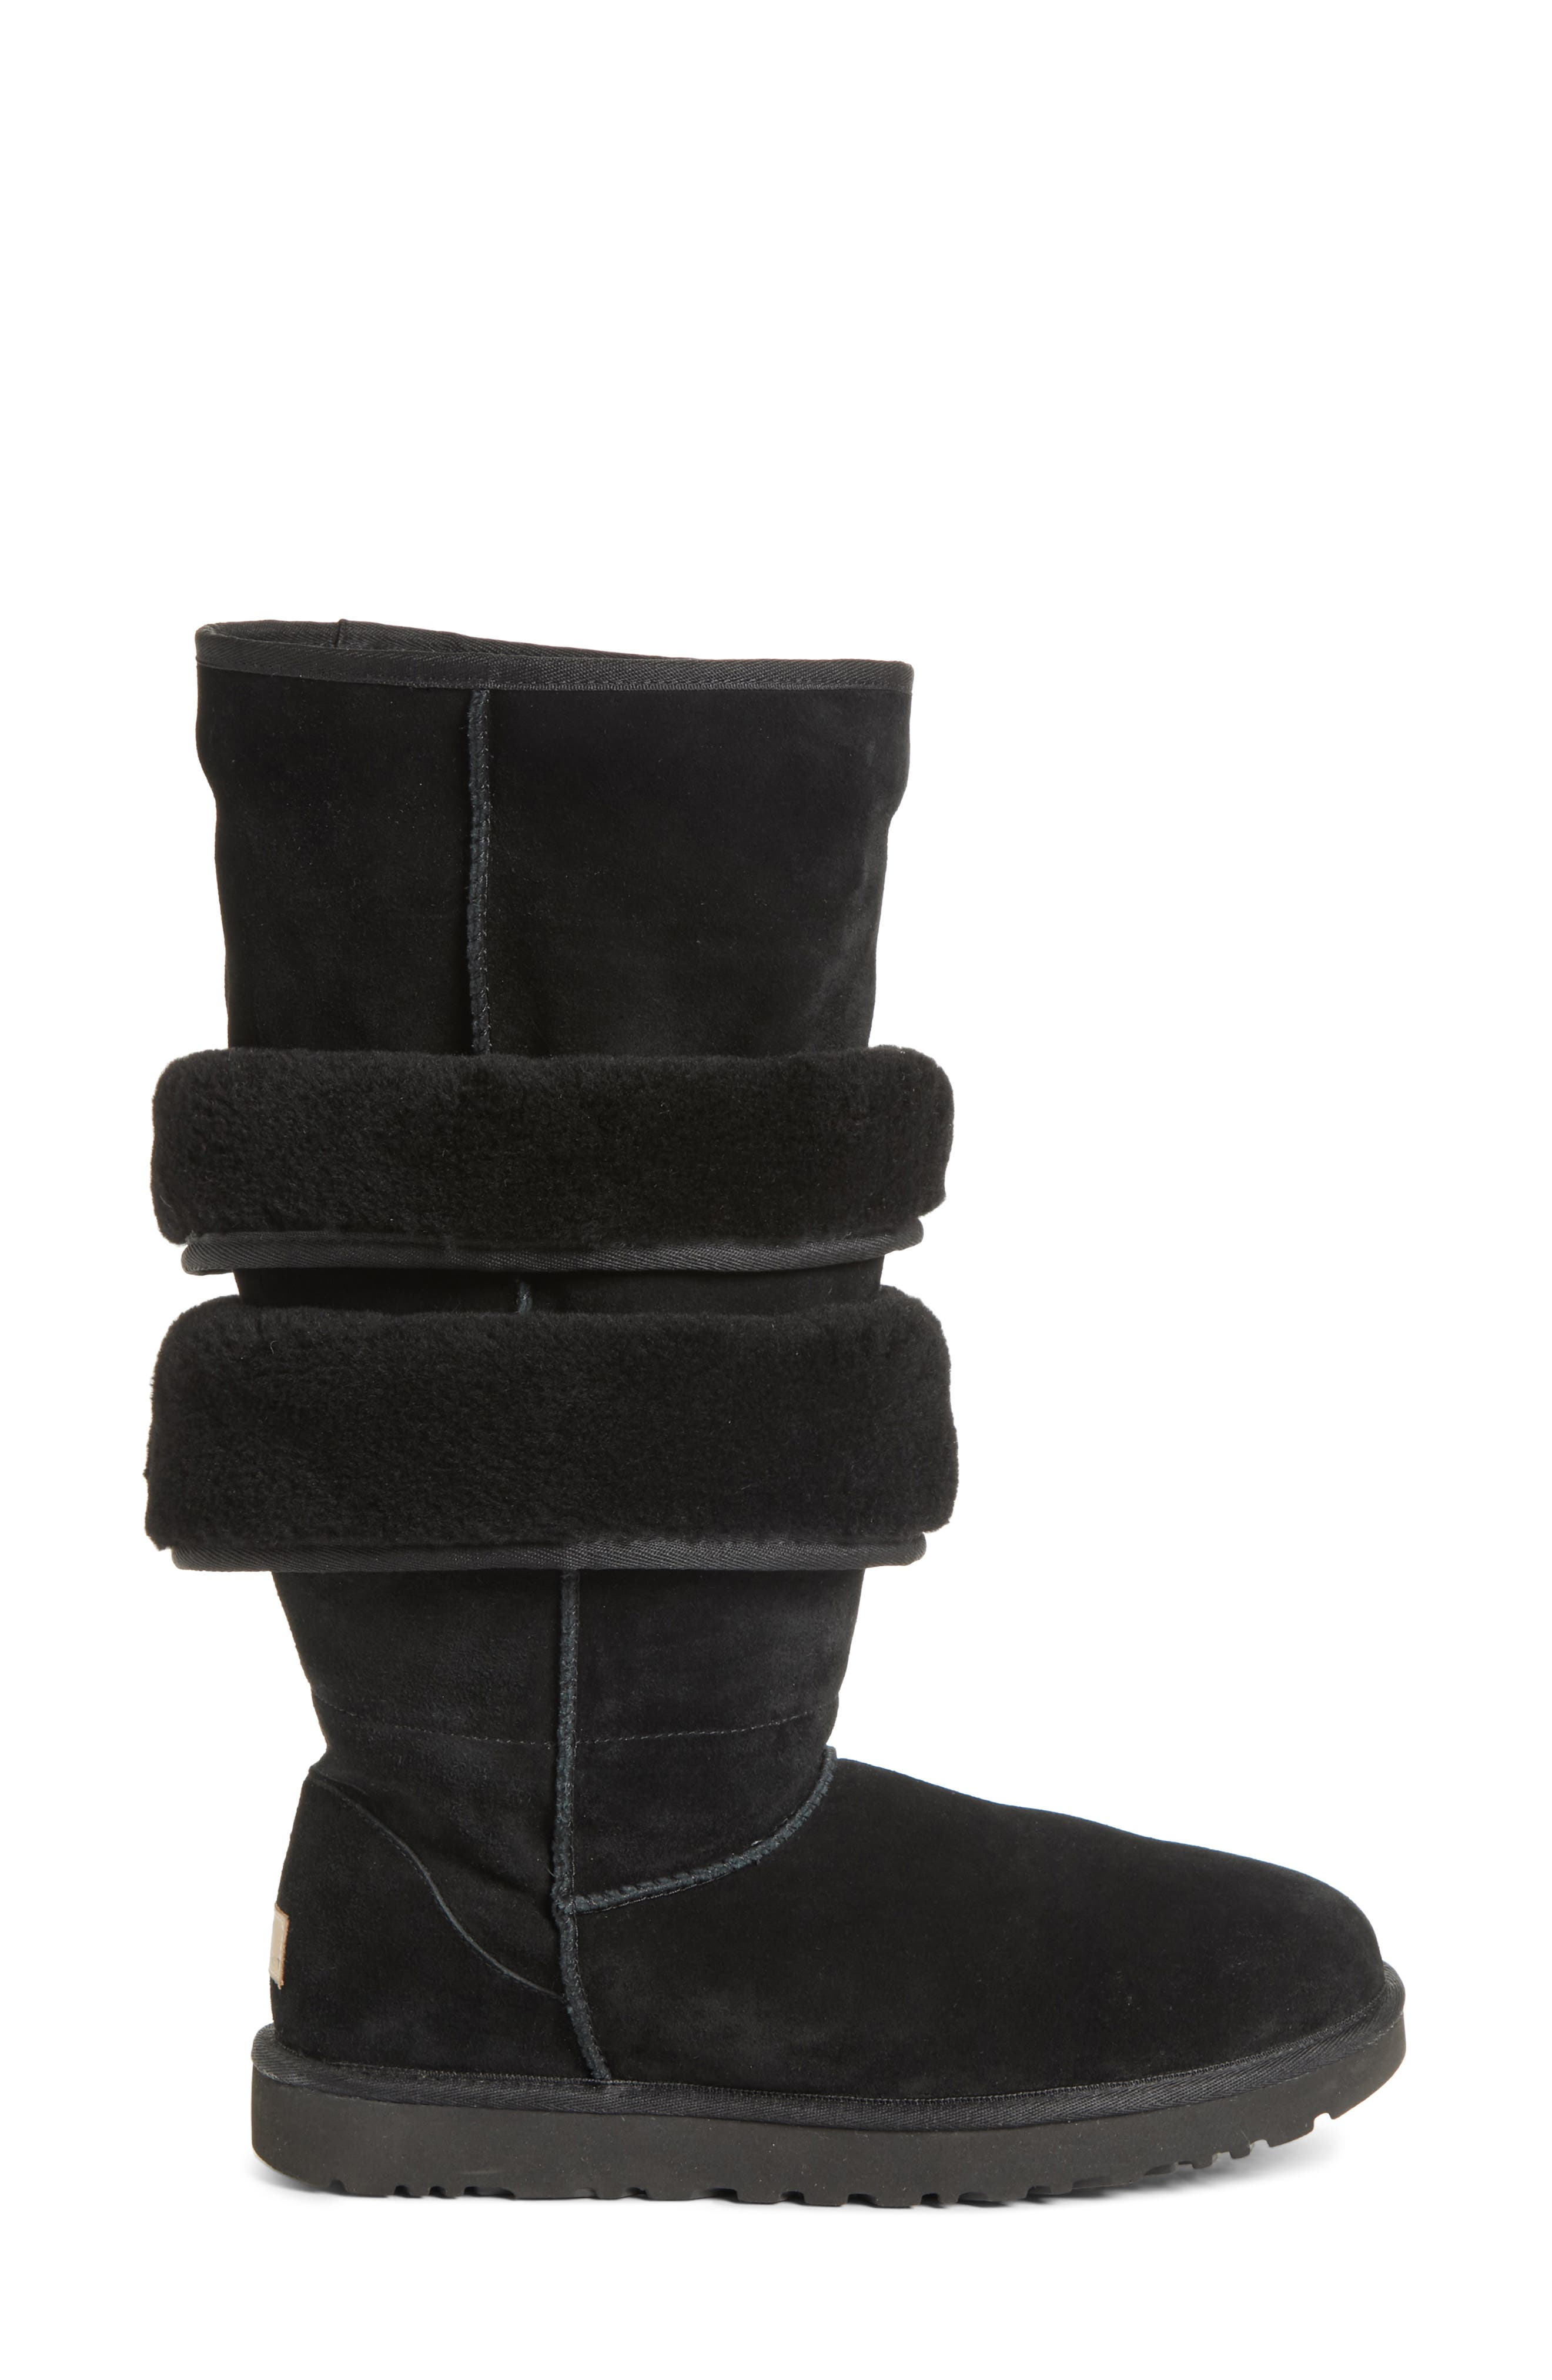 x UGG<sup>®</sup> Layered Boot,                             Alternate thumbnail 3, color,                             NOIR